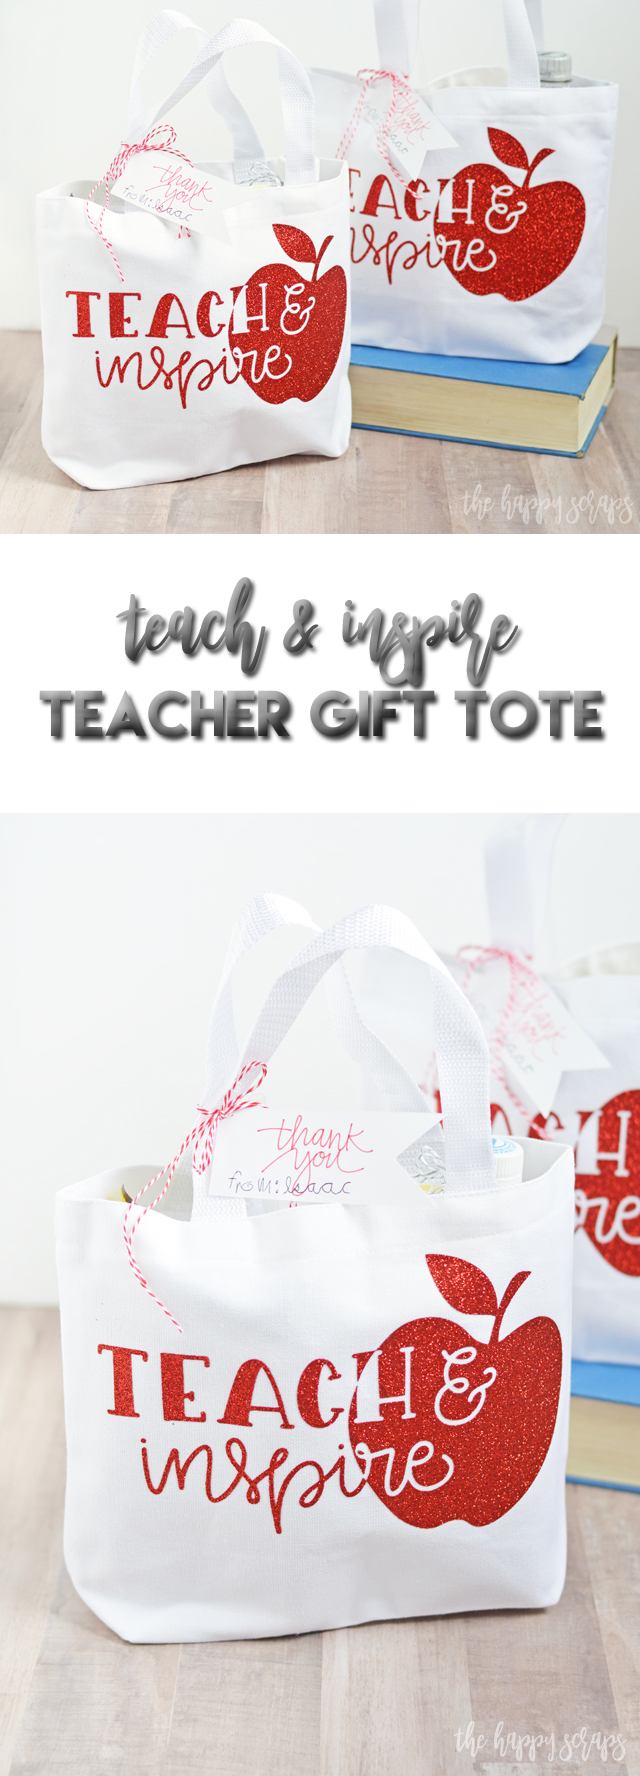 Spoil those teachers this year with a Teach & Inspire Teacher Gift Tote filled with all kinds of goodies that the teacher is sure to love!